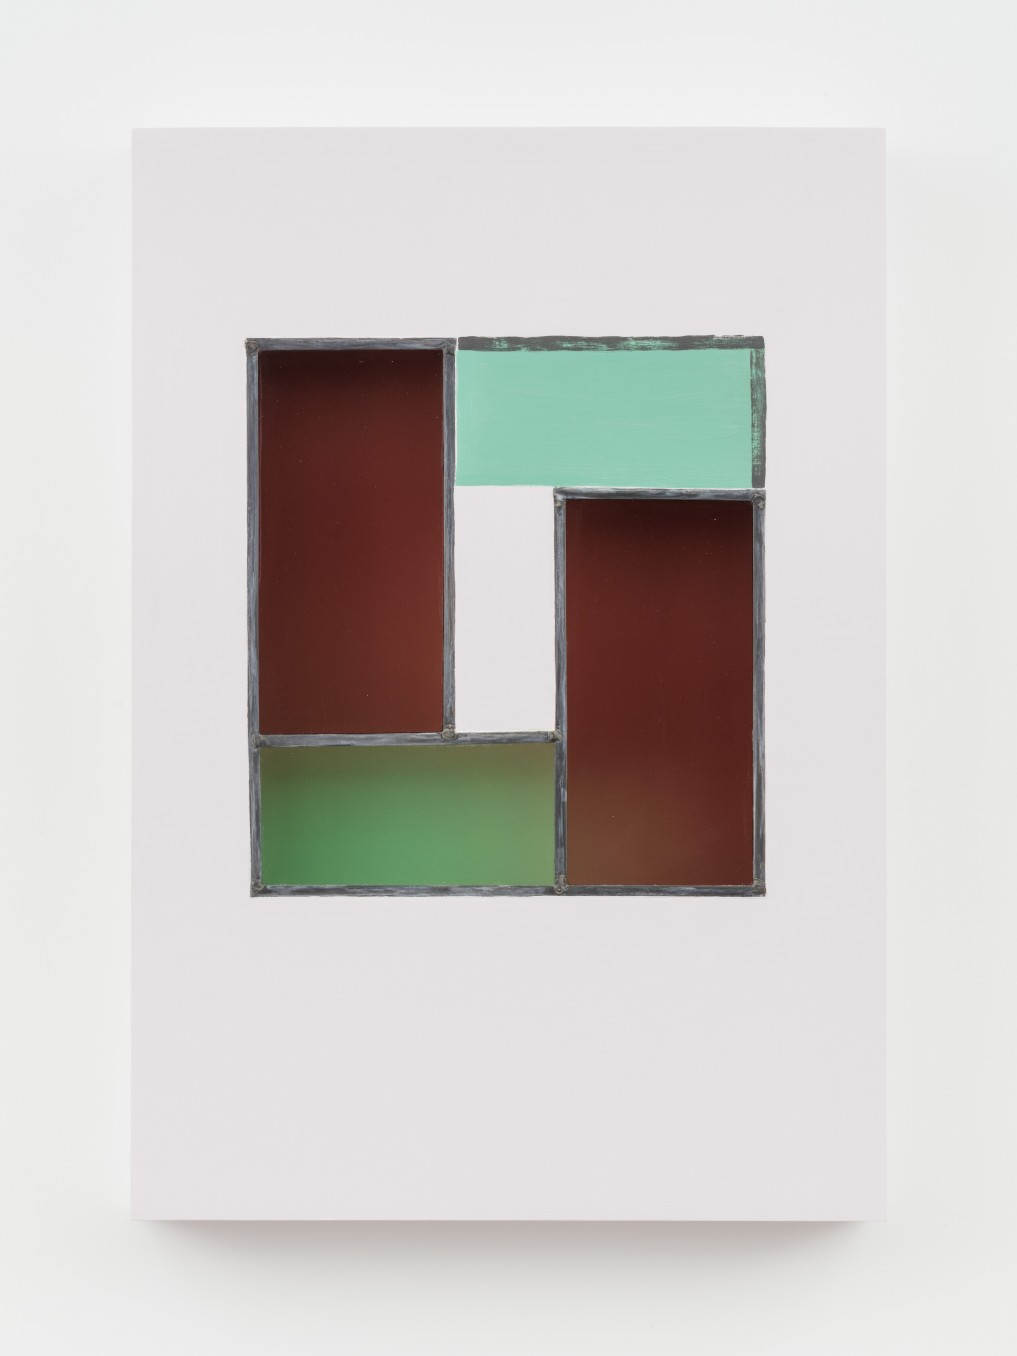 Jessica Warboys HOUR IV, 2019 Acrylic, antique glass, lead came, plywood 87 x 59.7 x 8.9 cm 34 1/4 x...